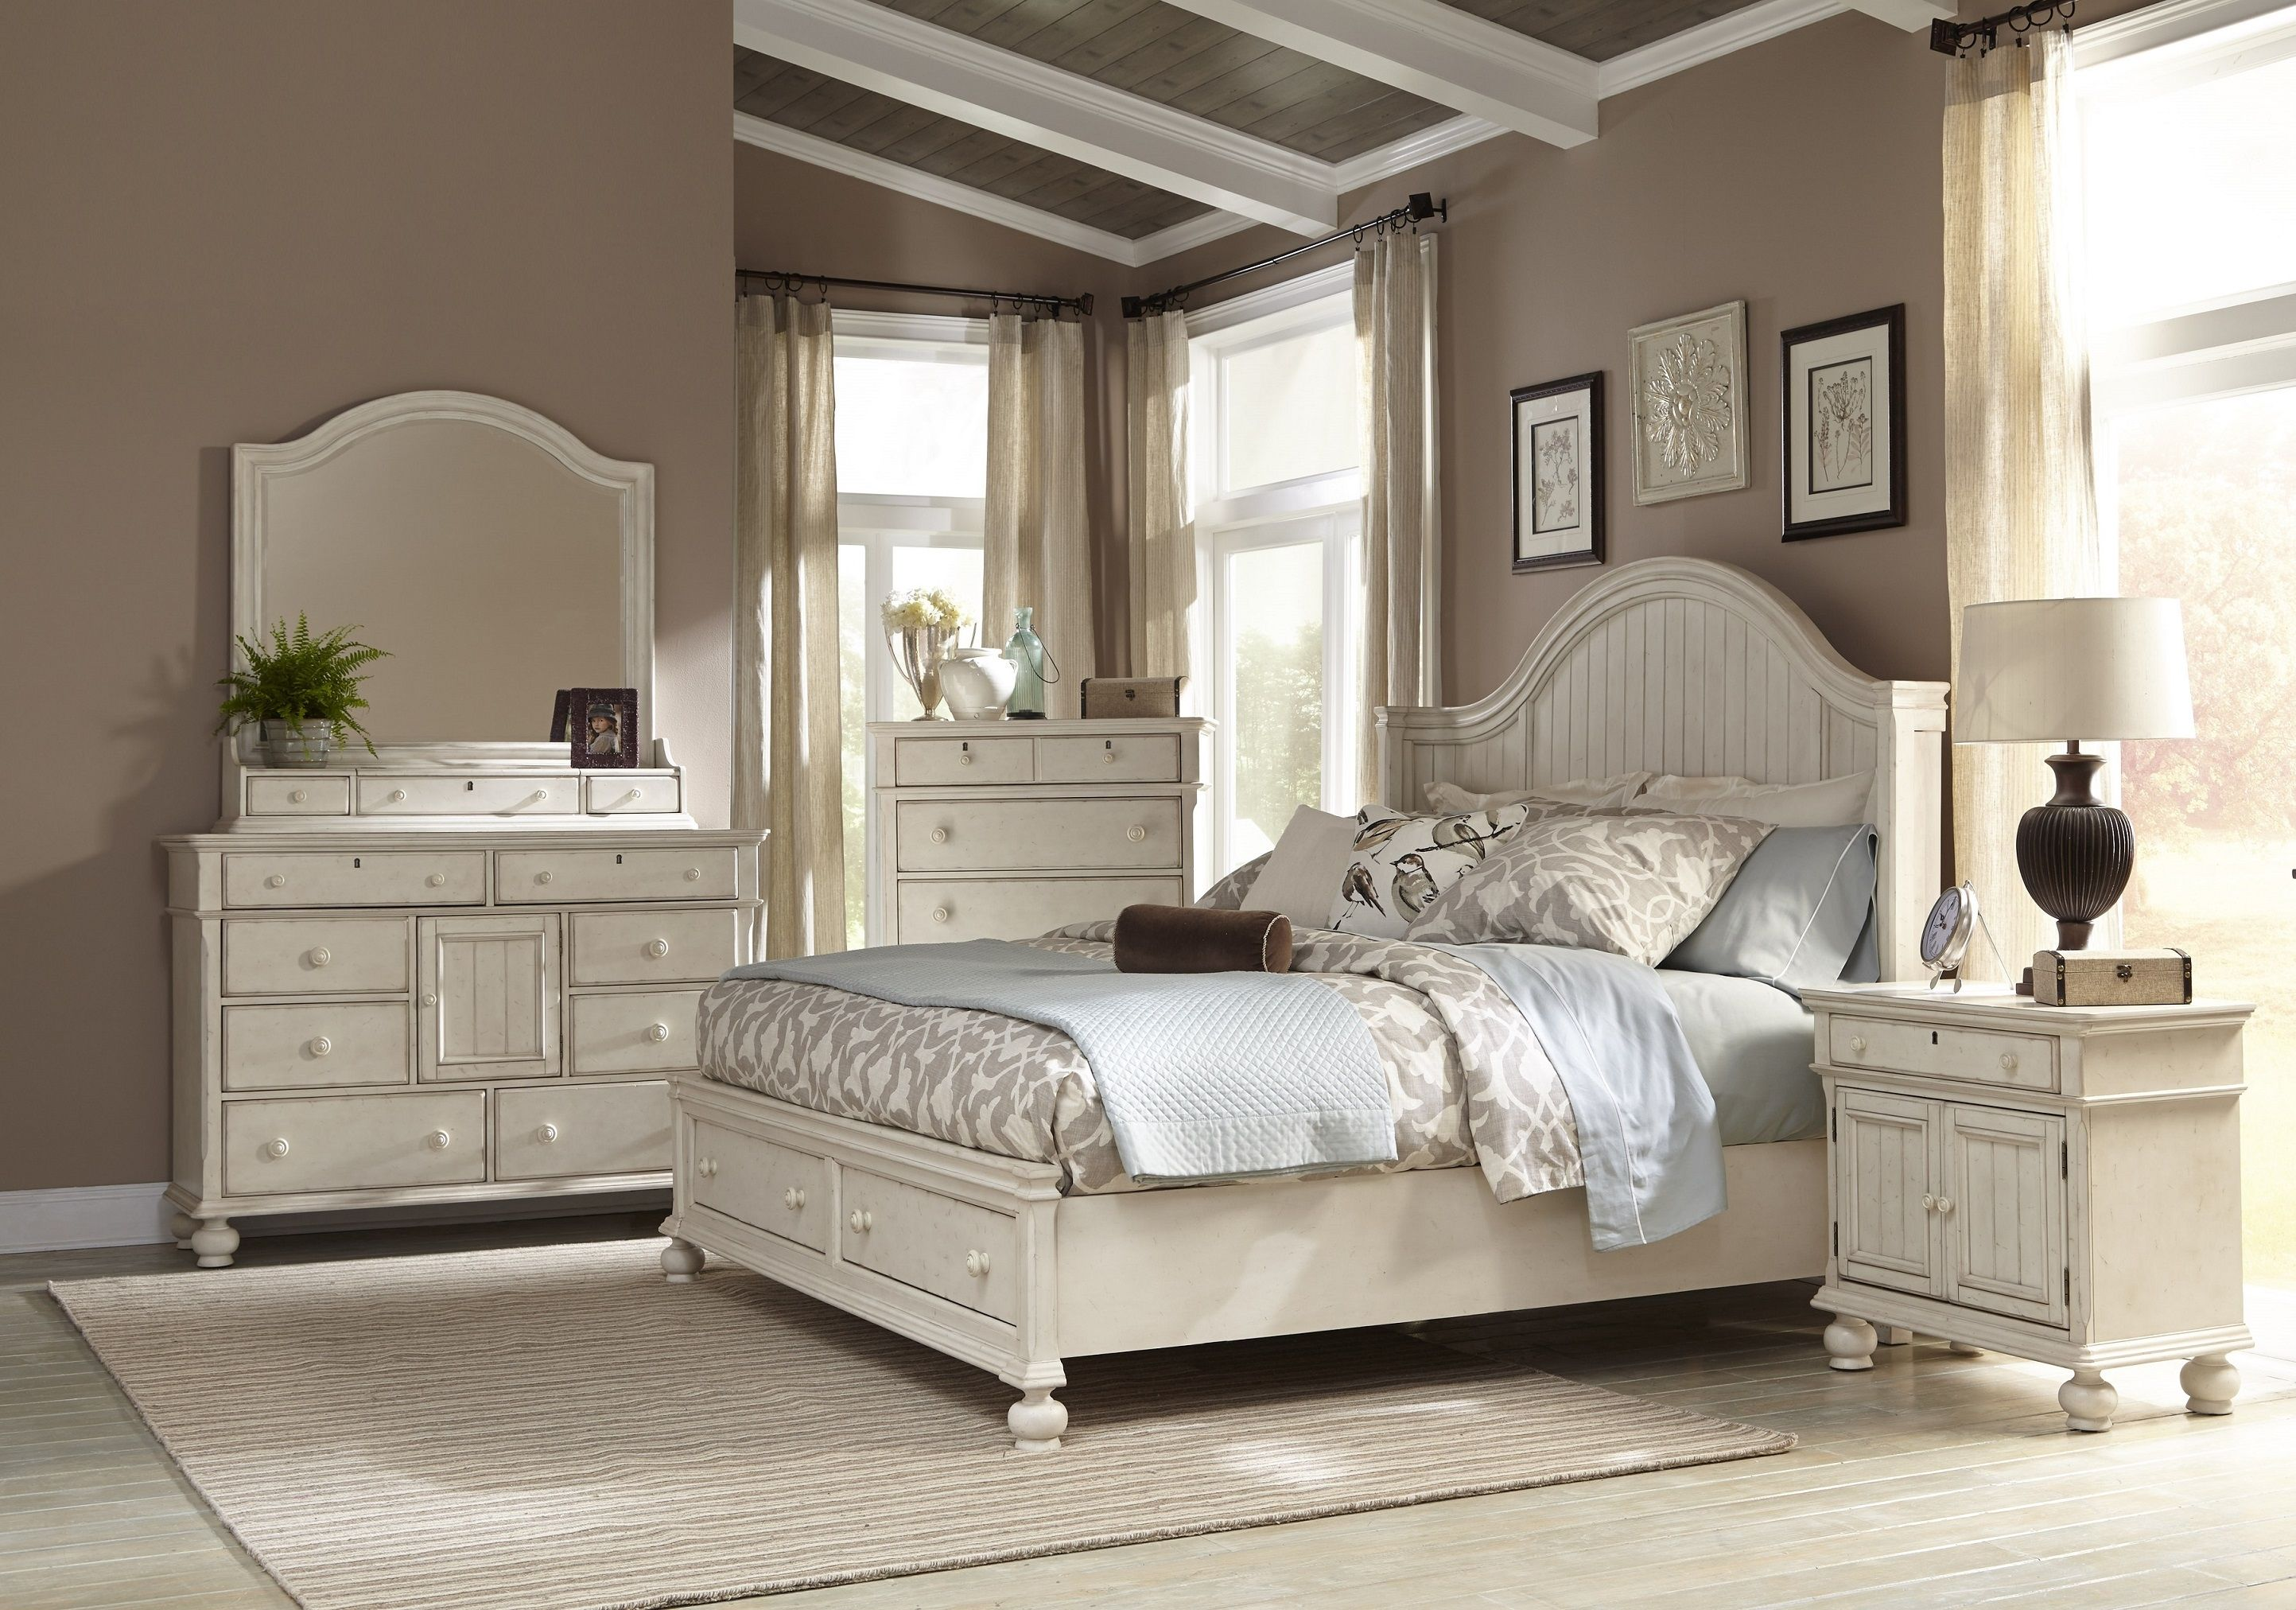 25 Coloring Pages Bedroom Furniture Coloring Pages Pinterest